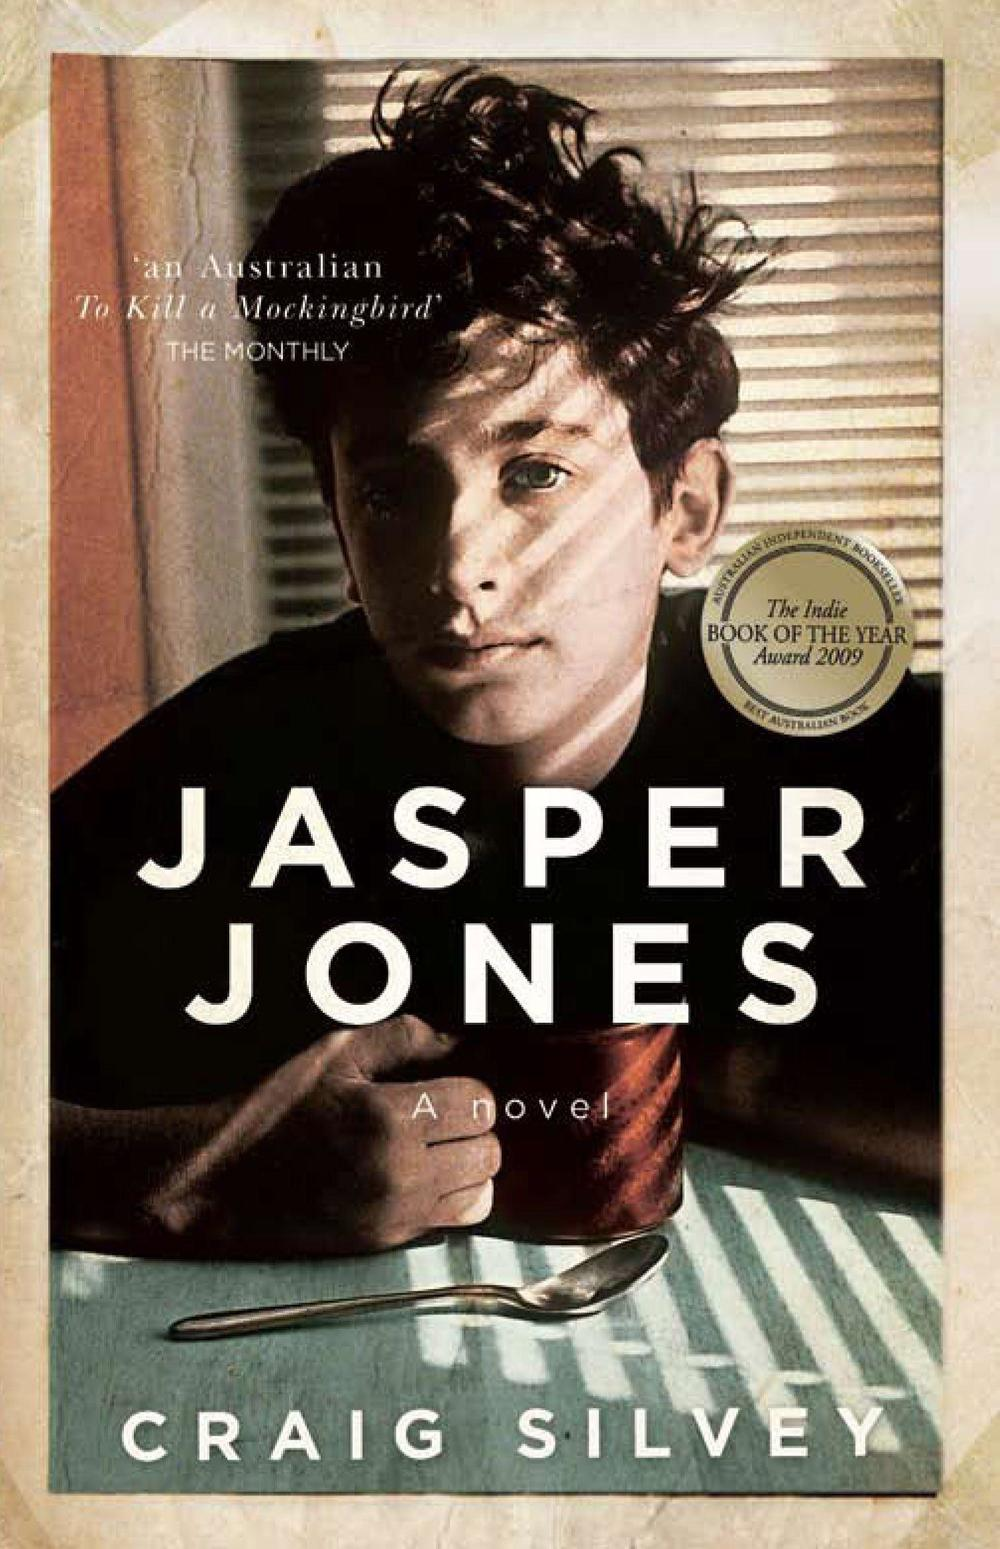 Jasper Jones by Craig Silvey (Audiobook) Amazon | Audiobook | Goodreads